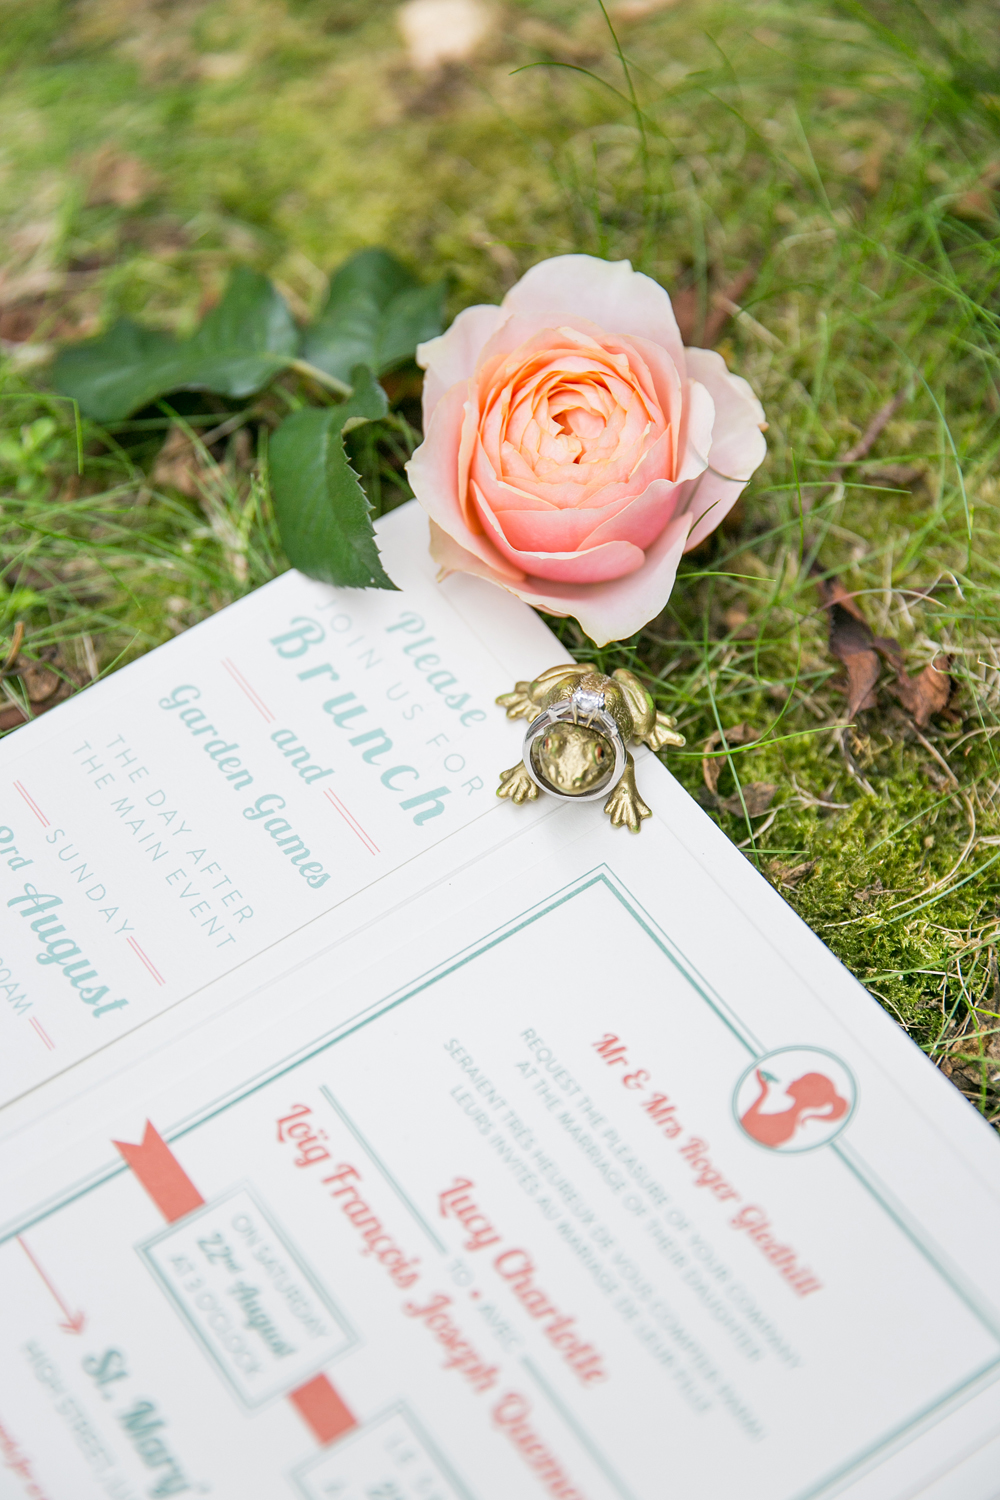 Lucy and Loig's bespoke letterpress wedding invitations